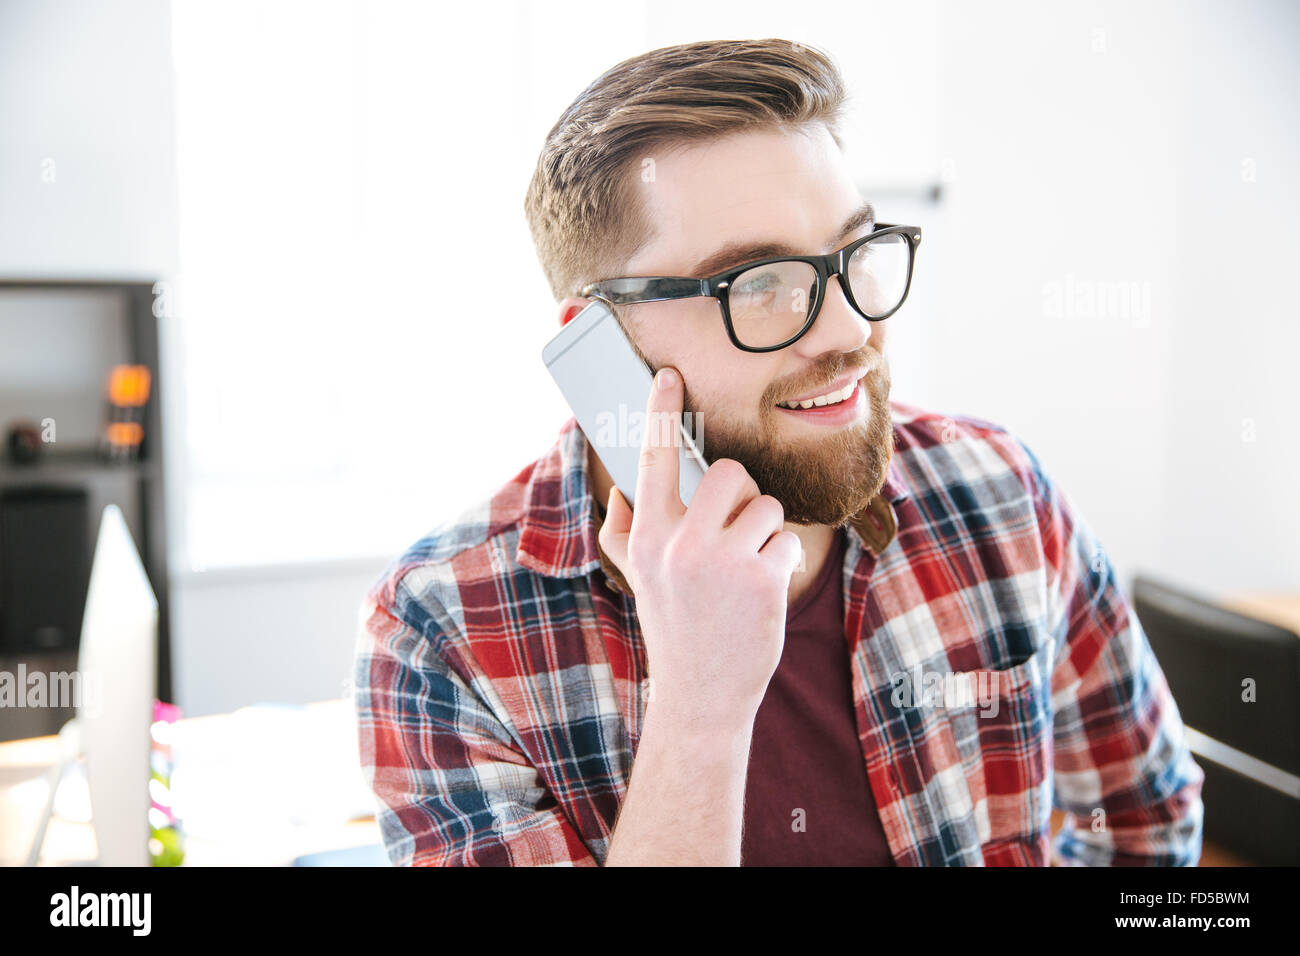 Happy young man with beard en chemise à carreaux et verres talking on cell phone dans le bureau Photo Stock